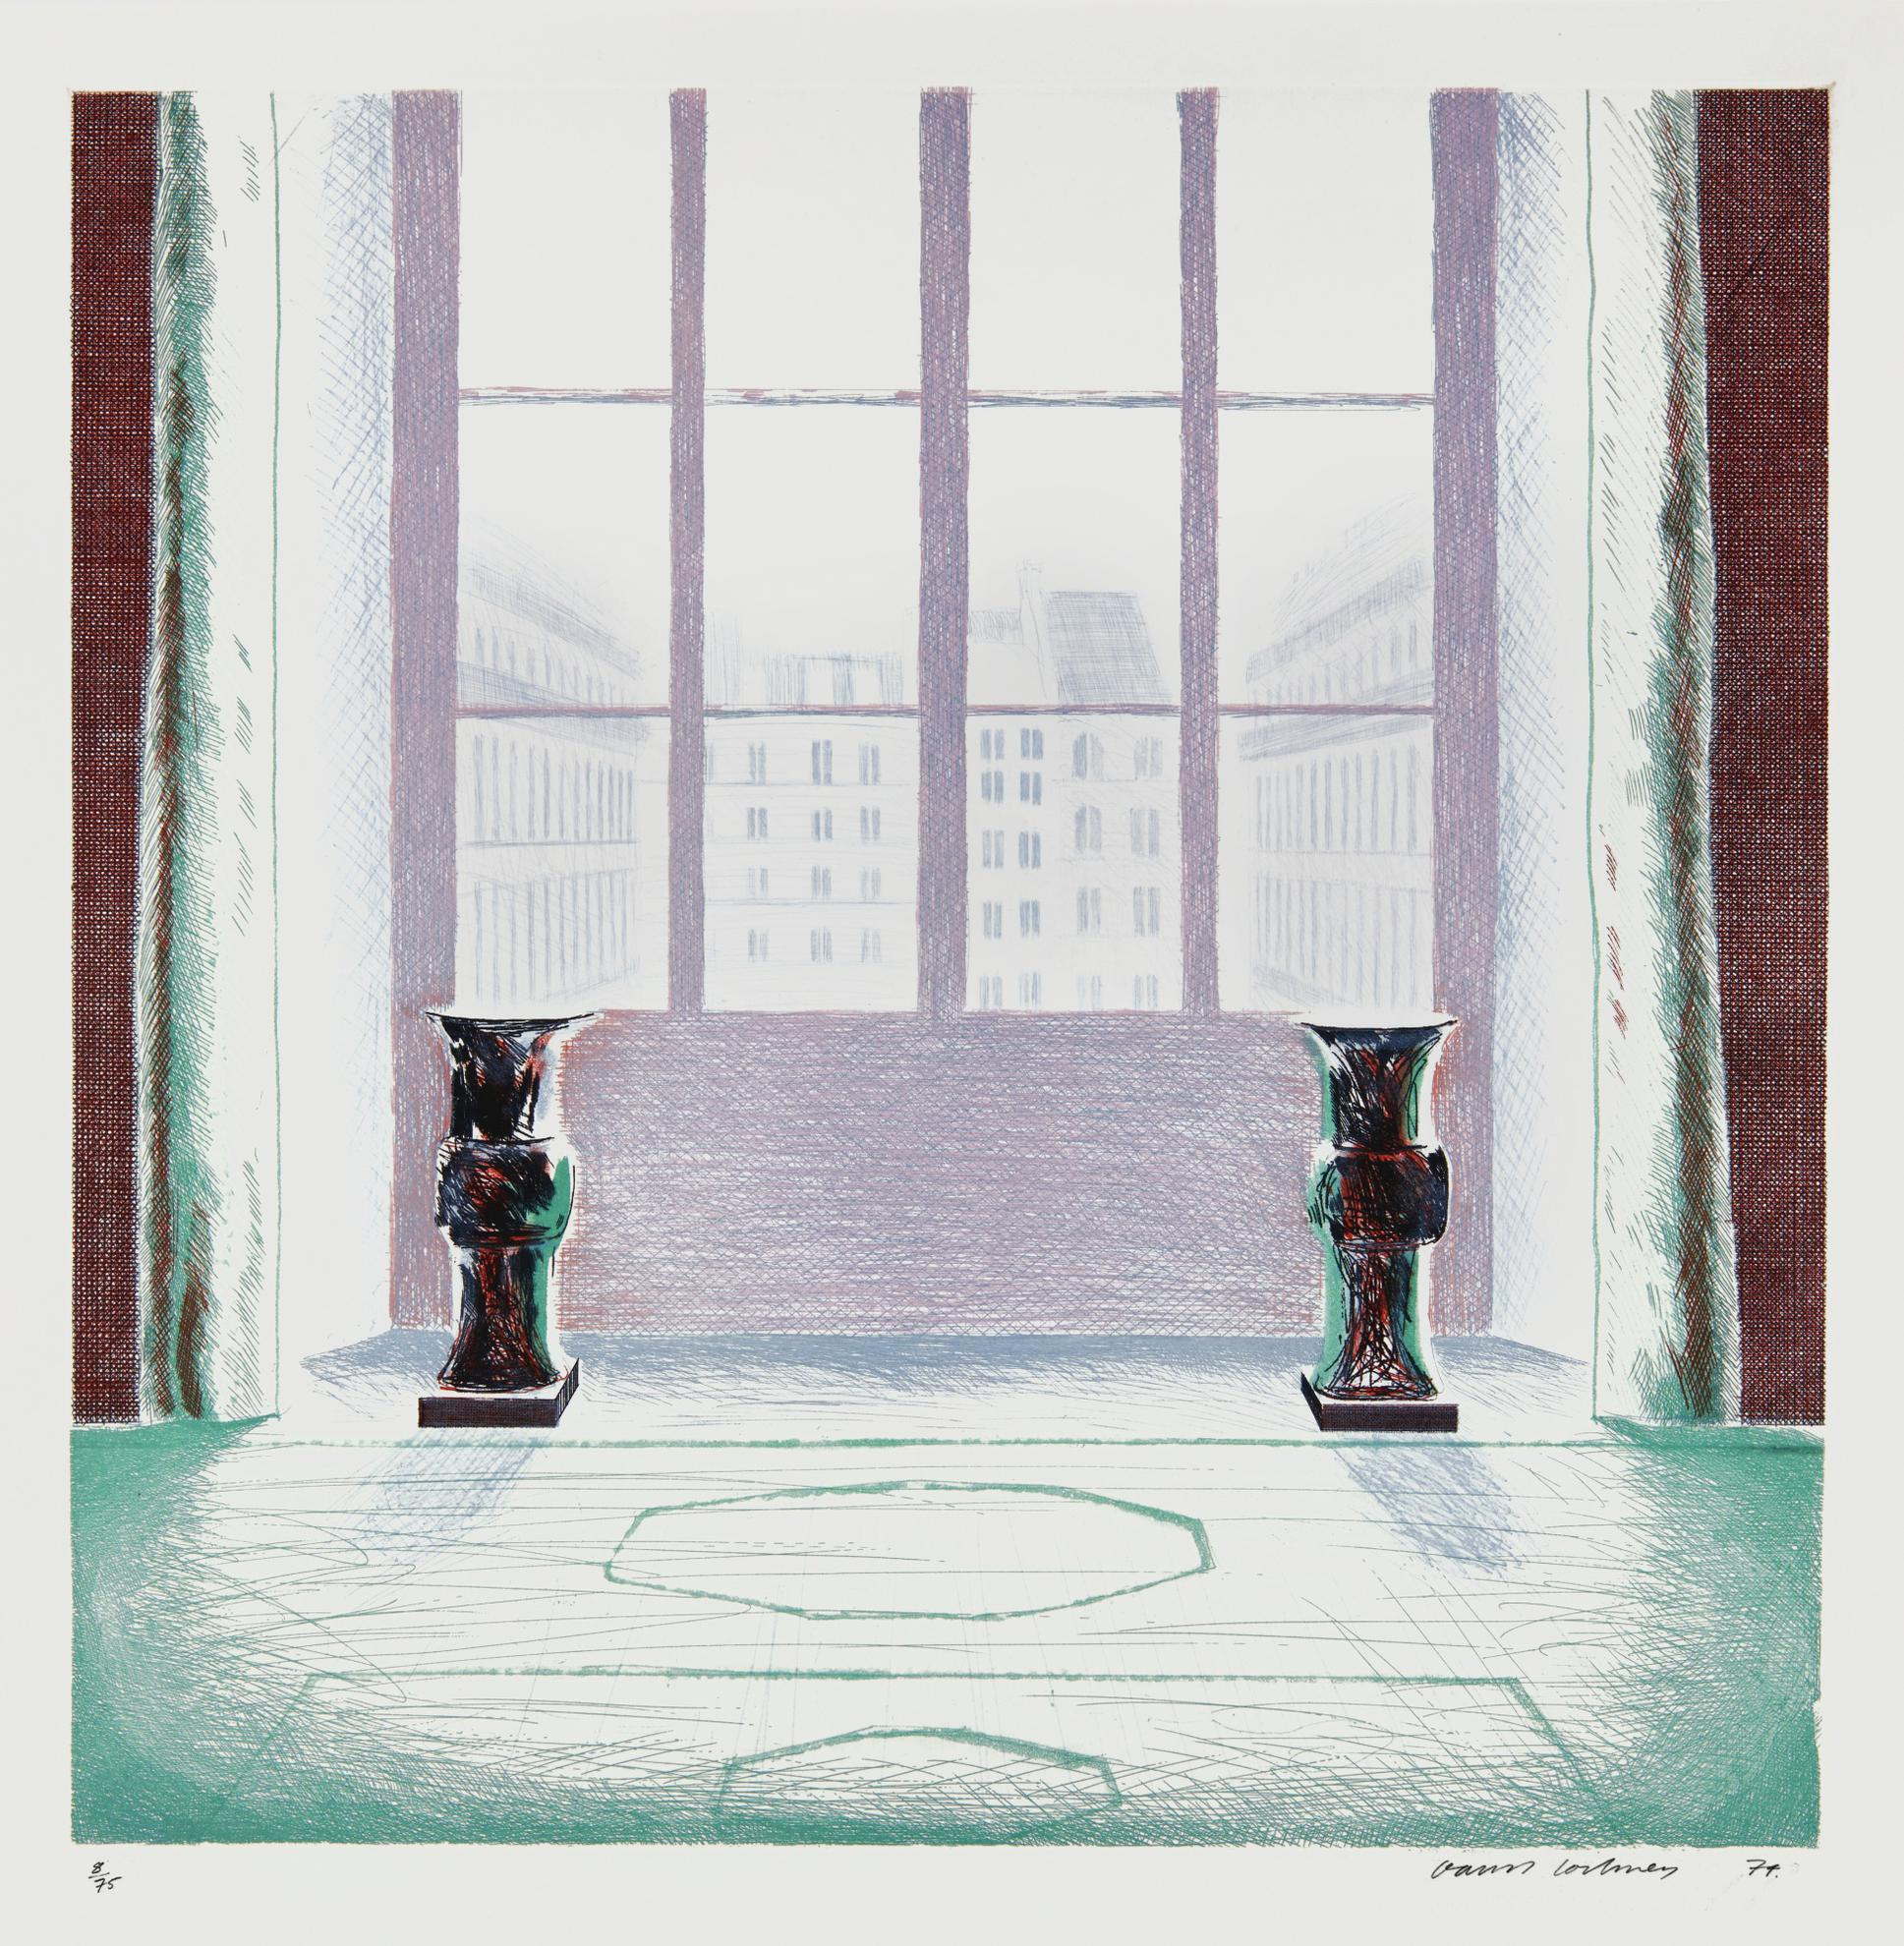 David Hockney-Two Vases In The Louvre (Scottish Arts Council 168; Mca Tokyo 154)-1974